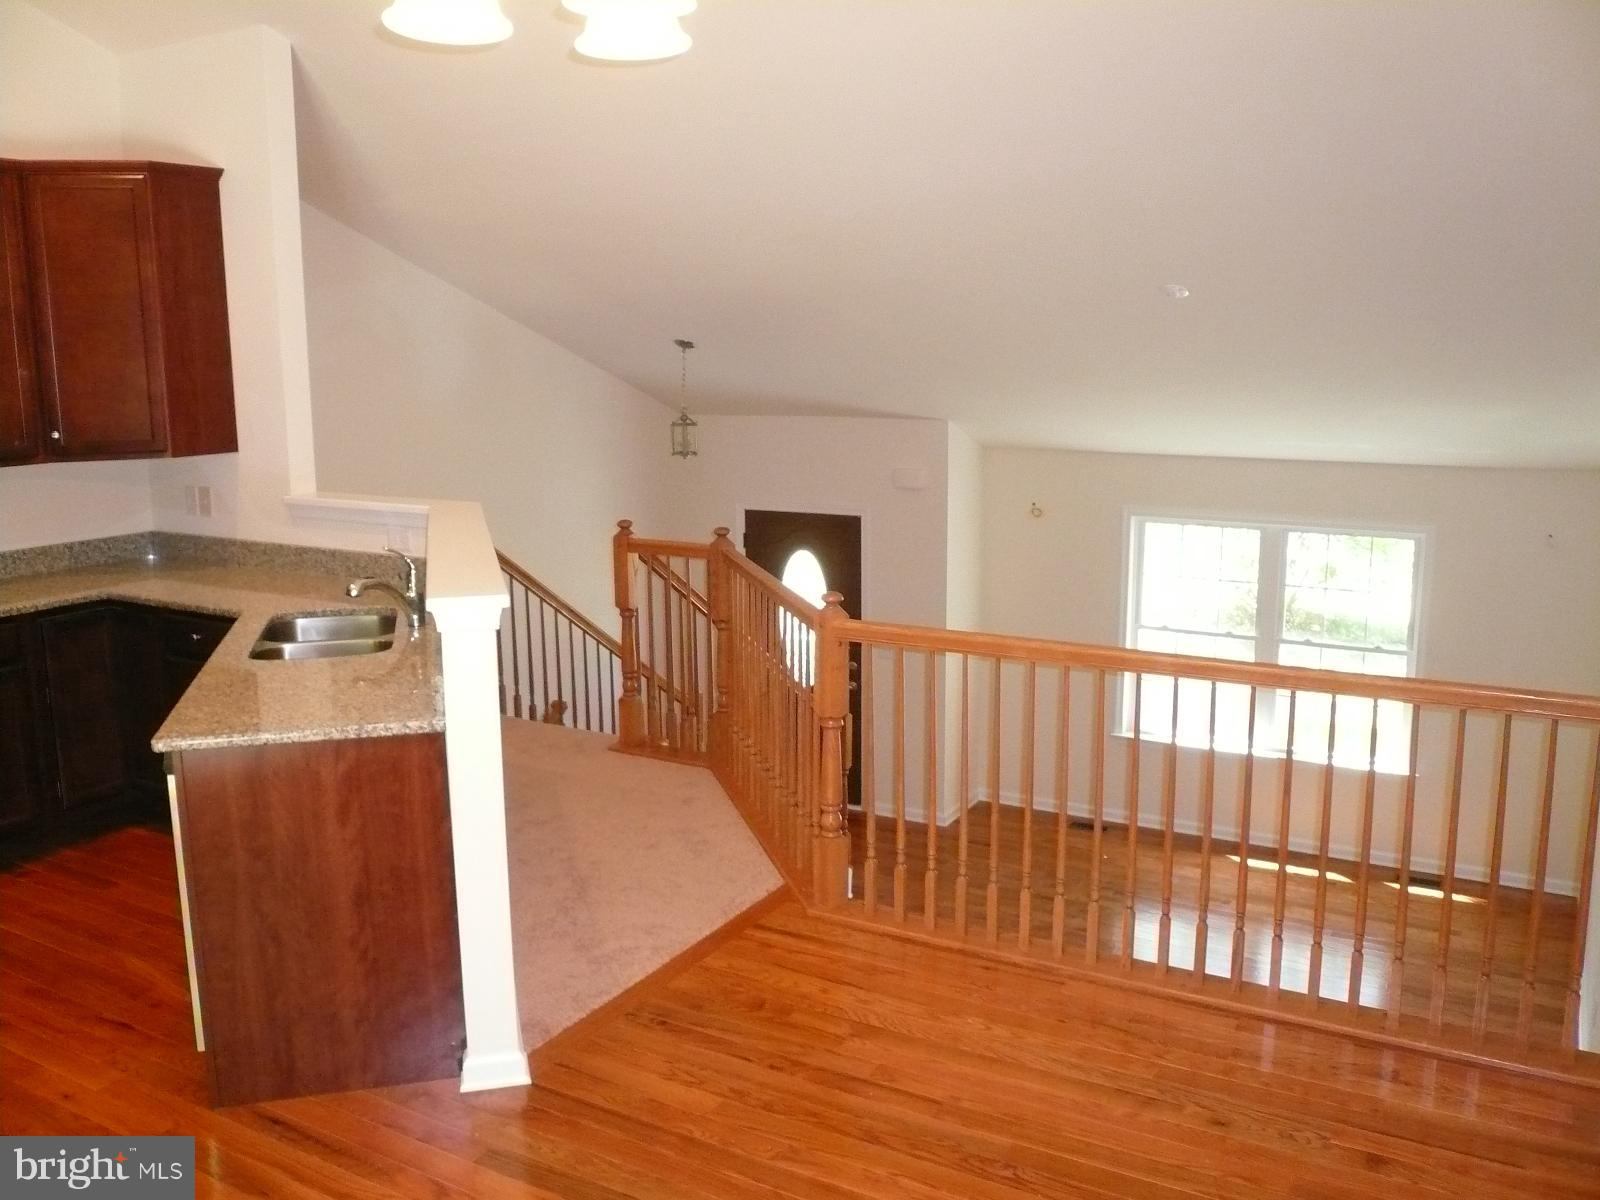 136 PEARL CREEK Ln, Chestertown, MD, 21620